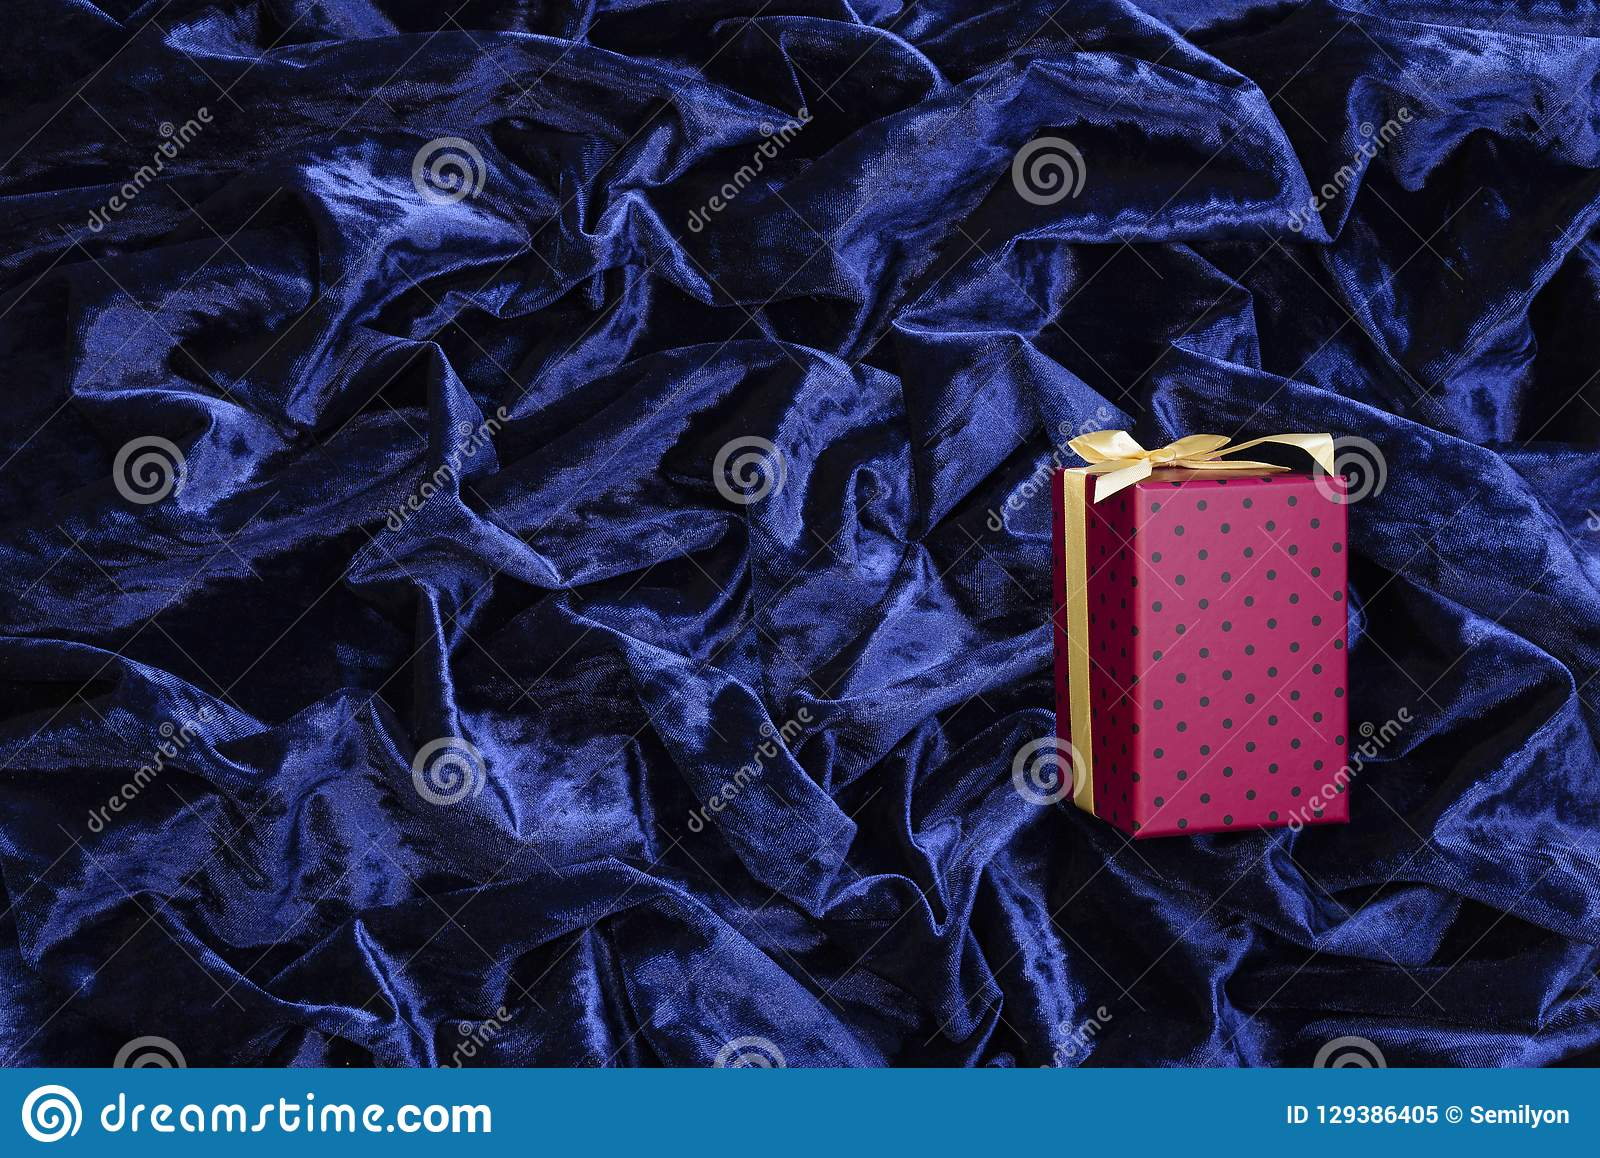 Pink gift box on a delicate blue silk surface with highlights, arranged in waves and pleats